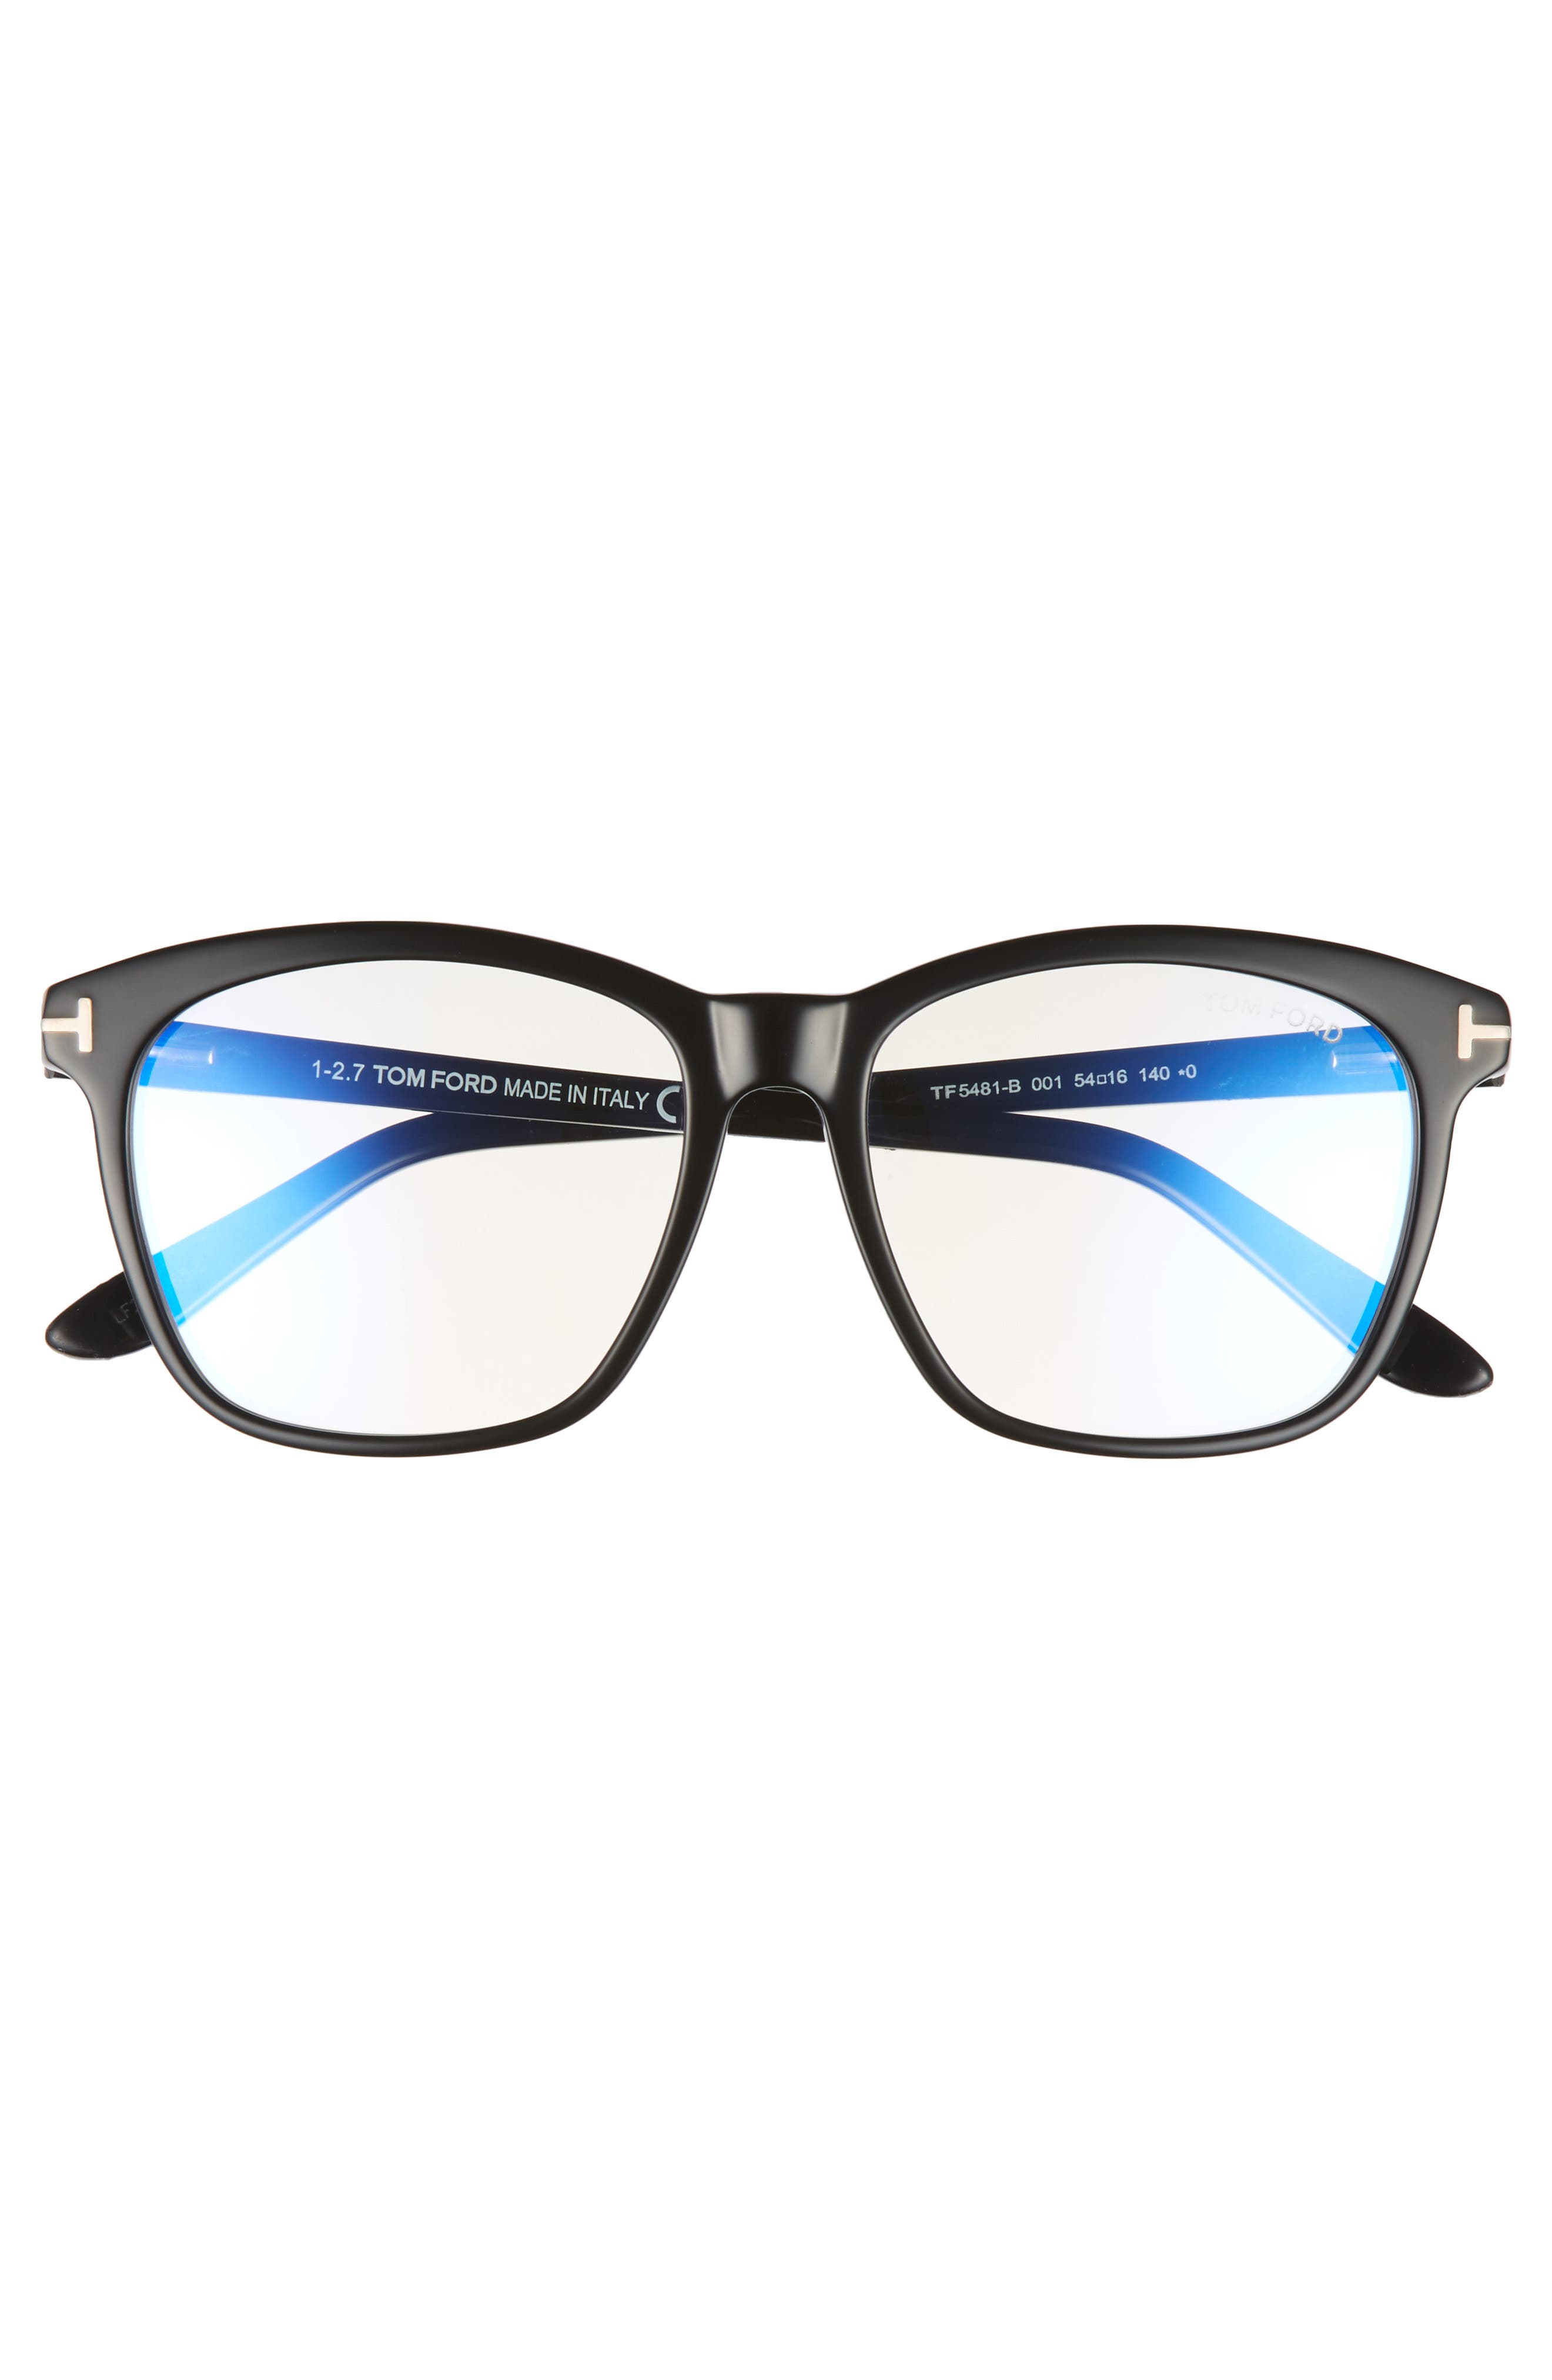 54mm Blue Block Optical Glasses,                             Alternate thumbnail 3, color,                             BLACK/ BLUE